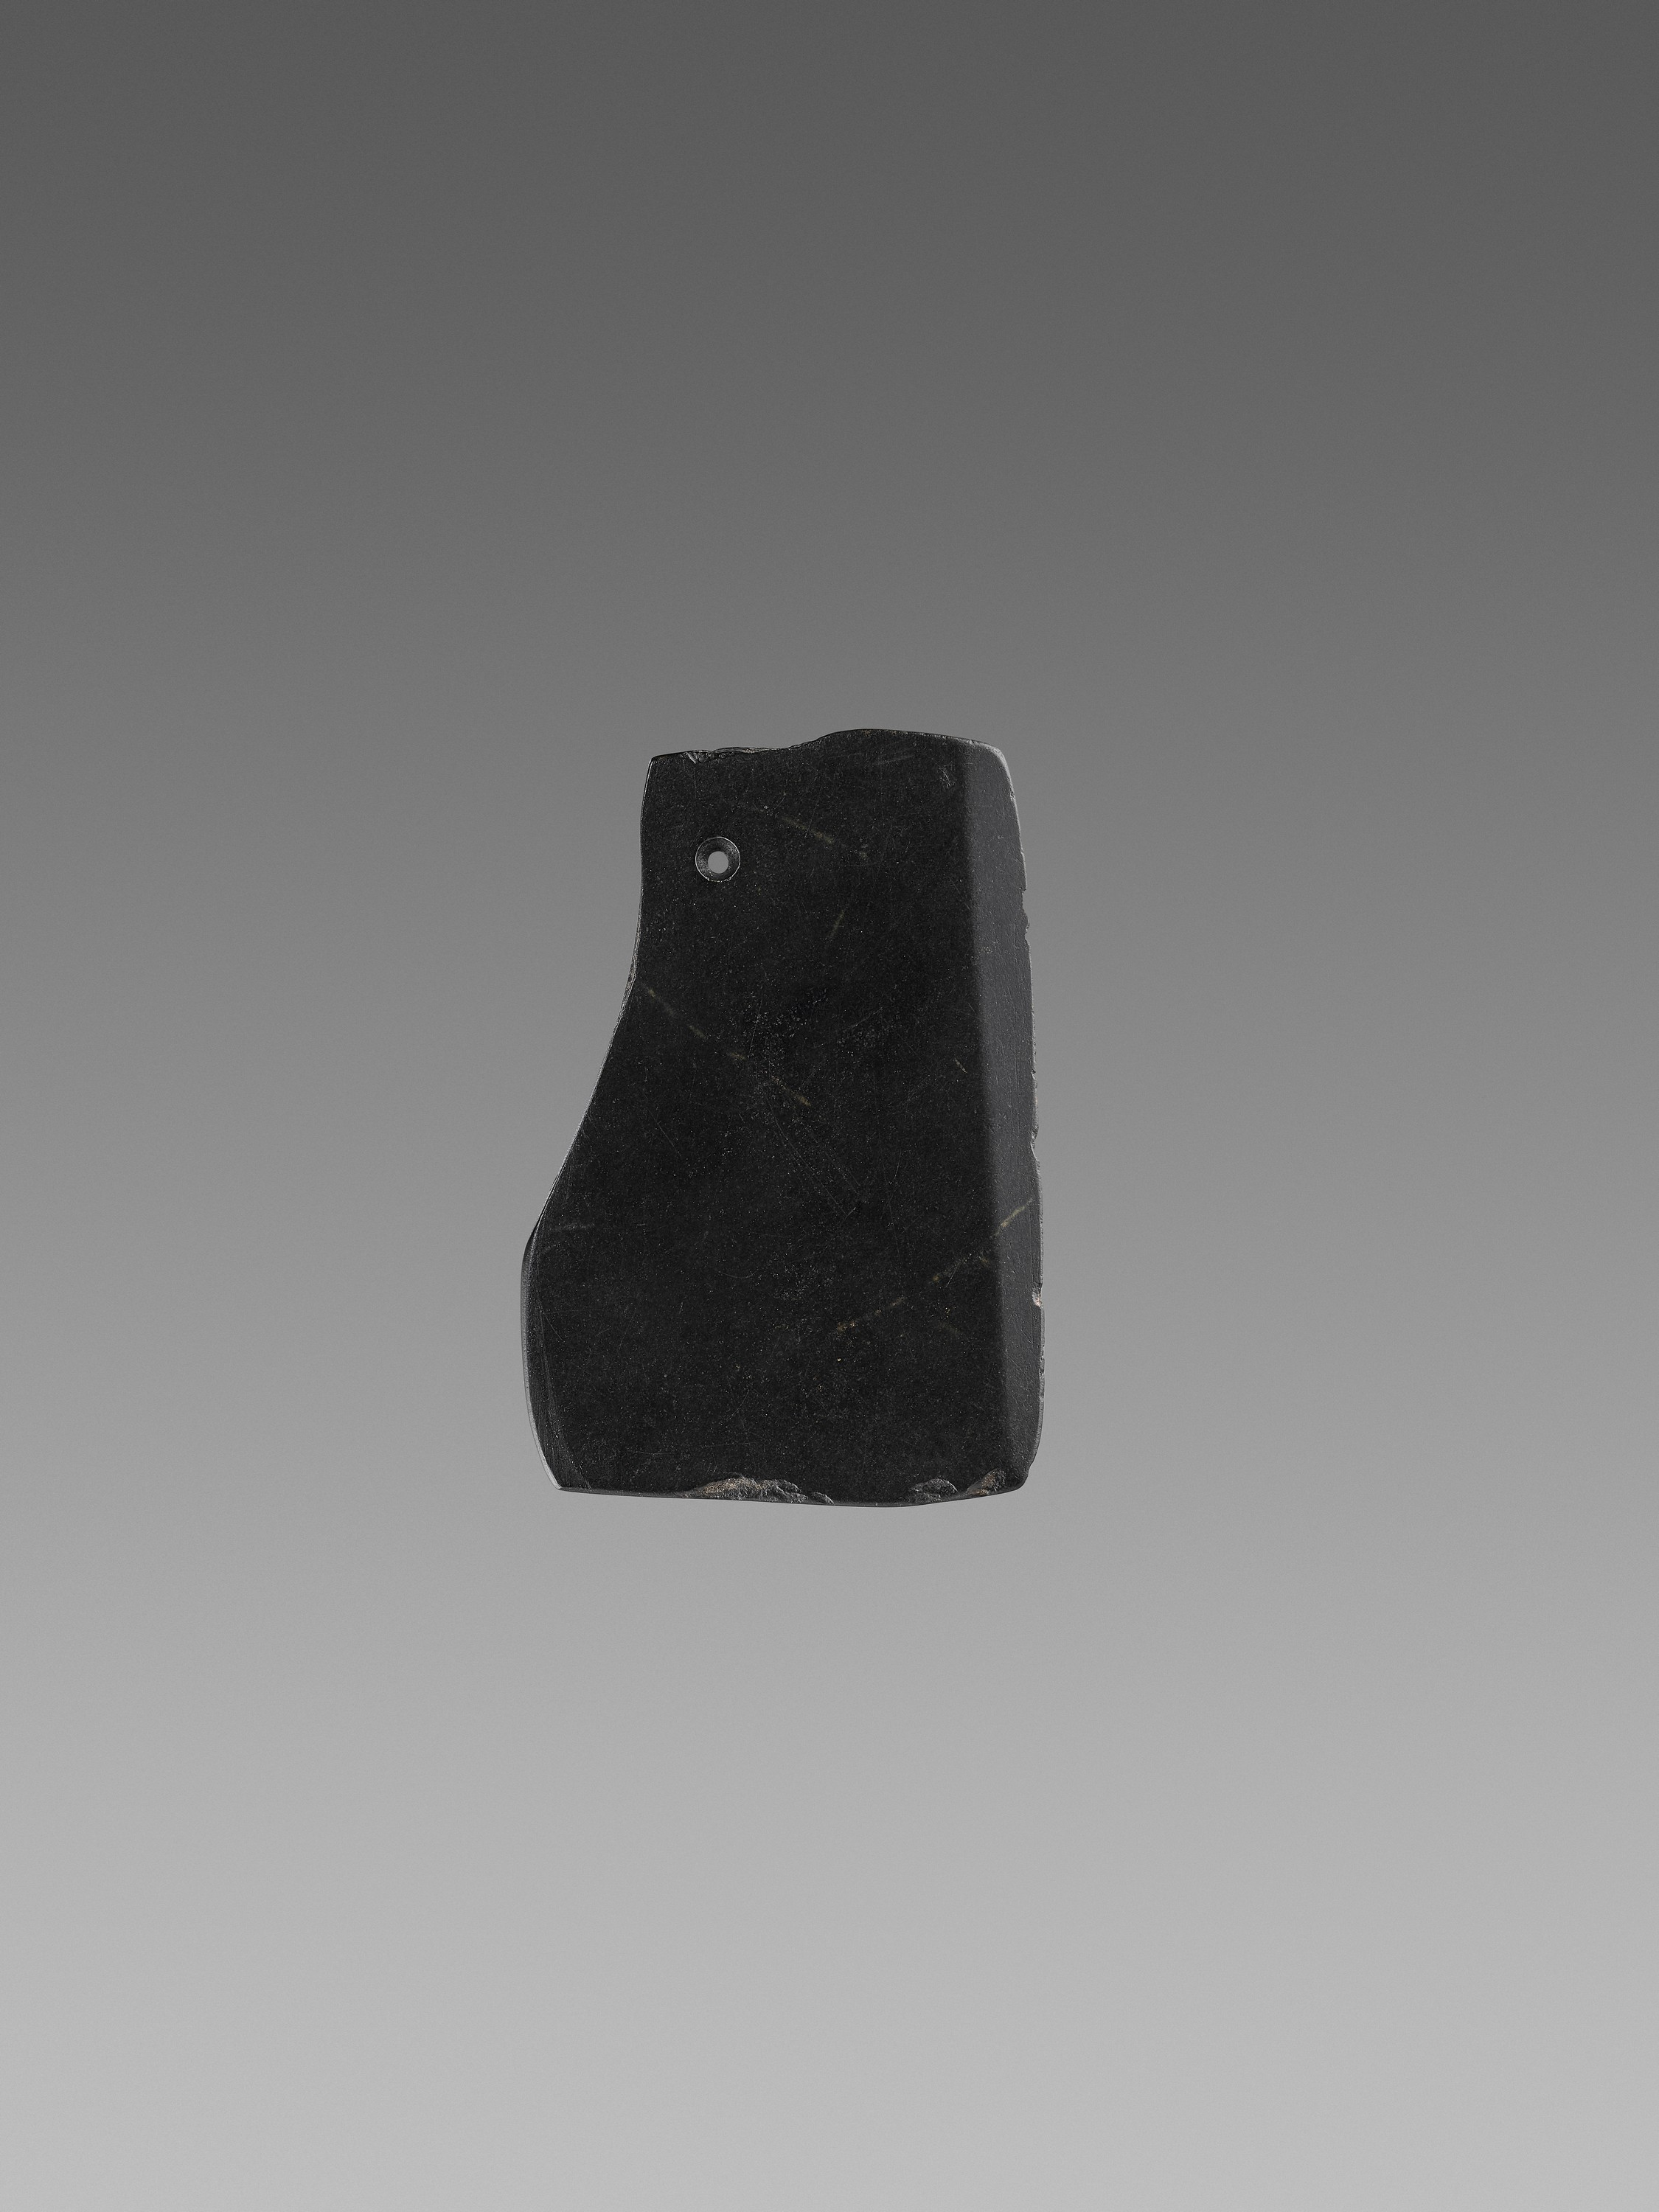 A BLACK JADE AXE, 2ND MILLENNIUM BC - Image 2 of 7